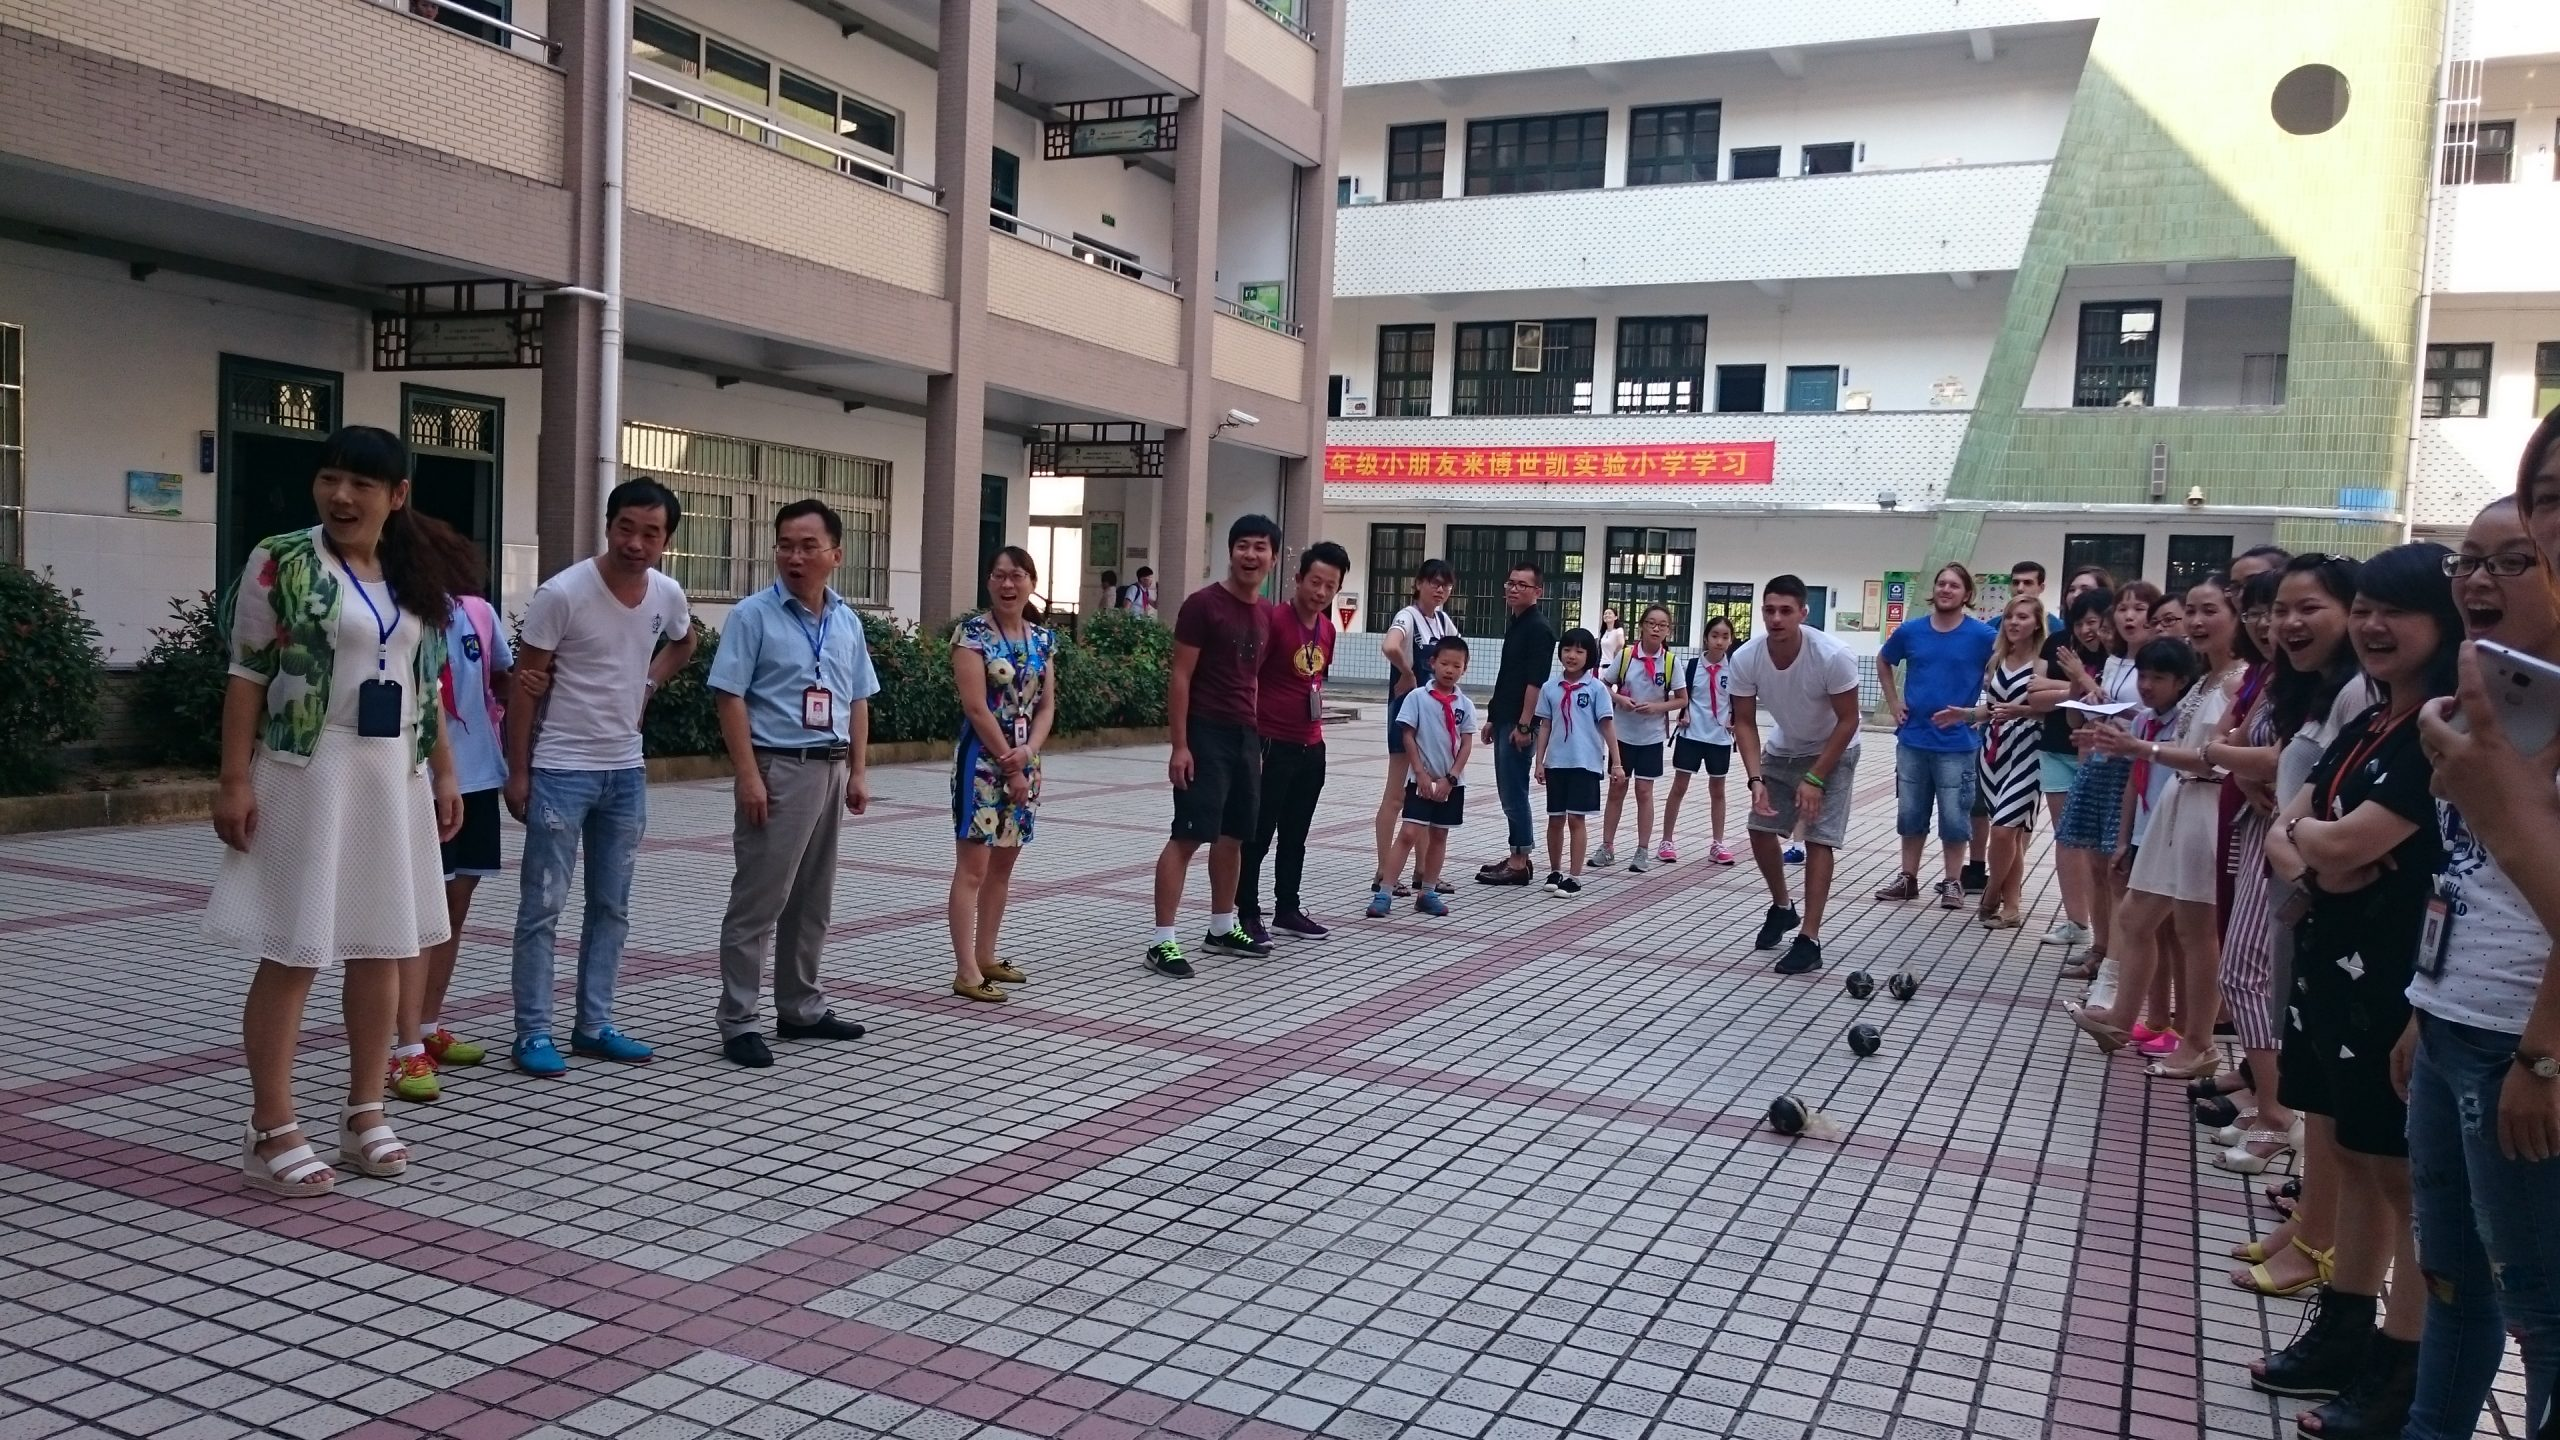 School games LinAn Hangzhou Teaching in China